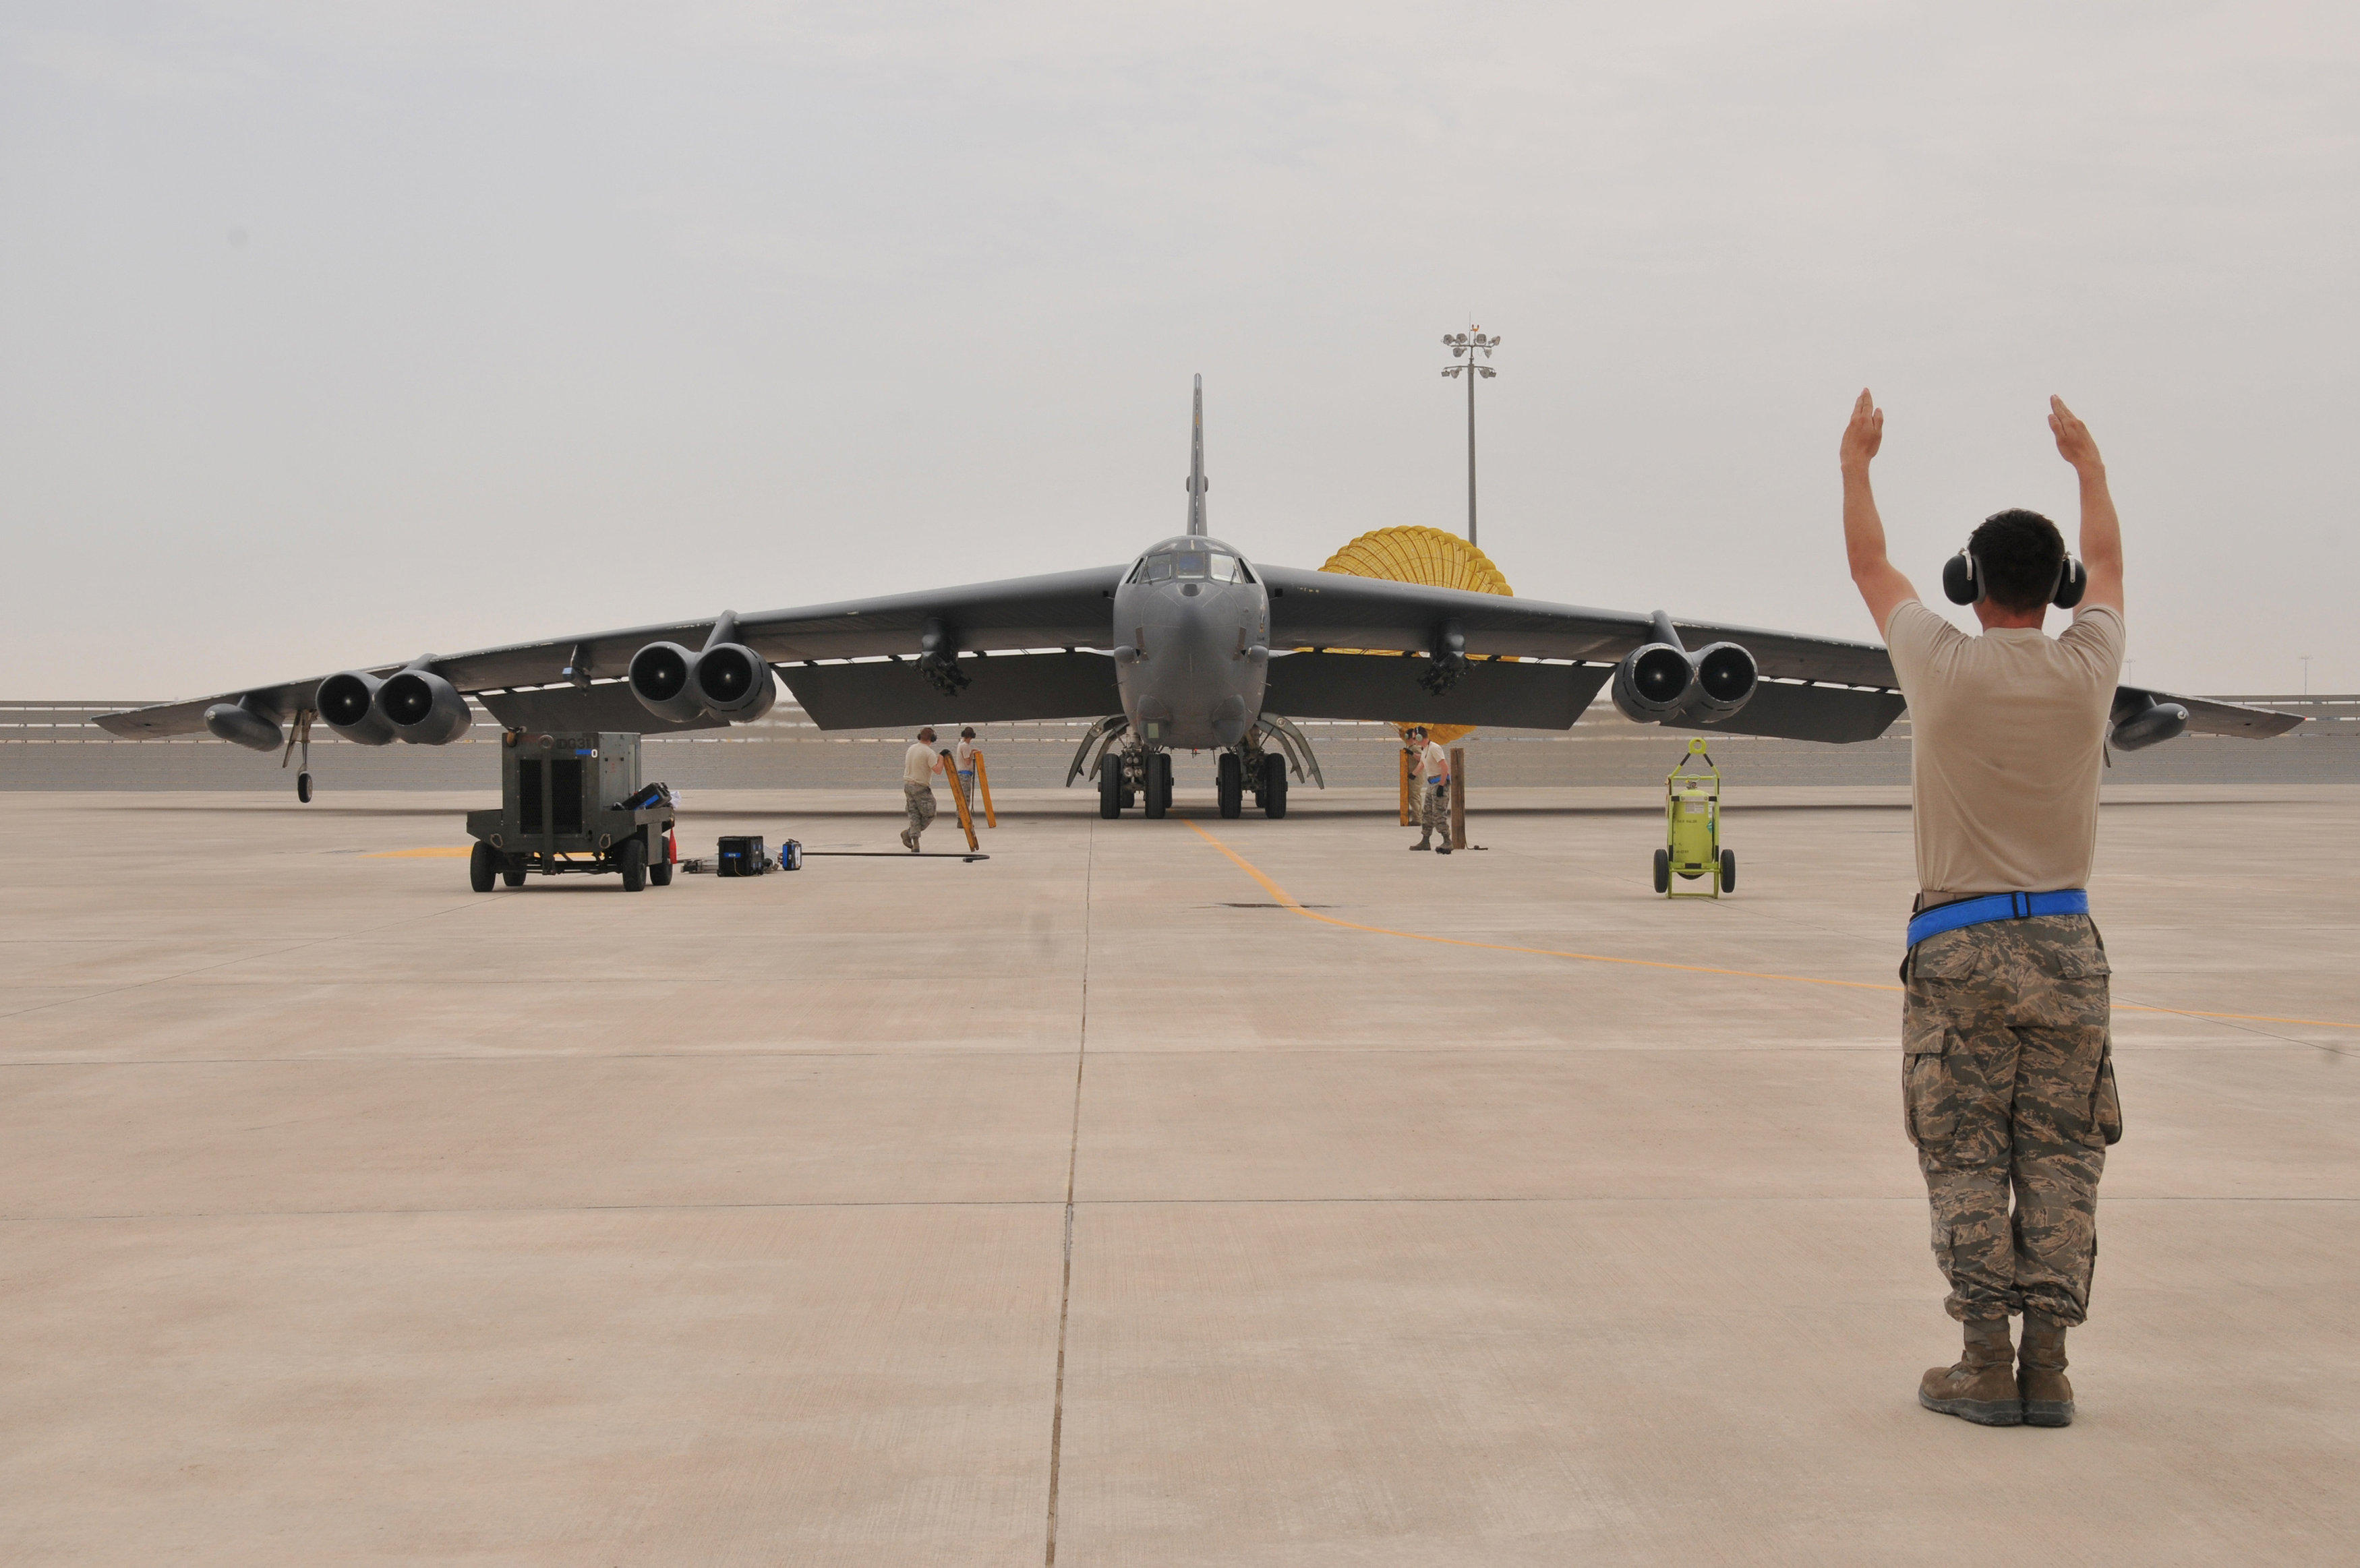 B-52 Stratofortress Bomber Intercepted By Russia On Border